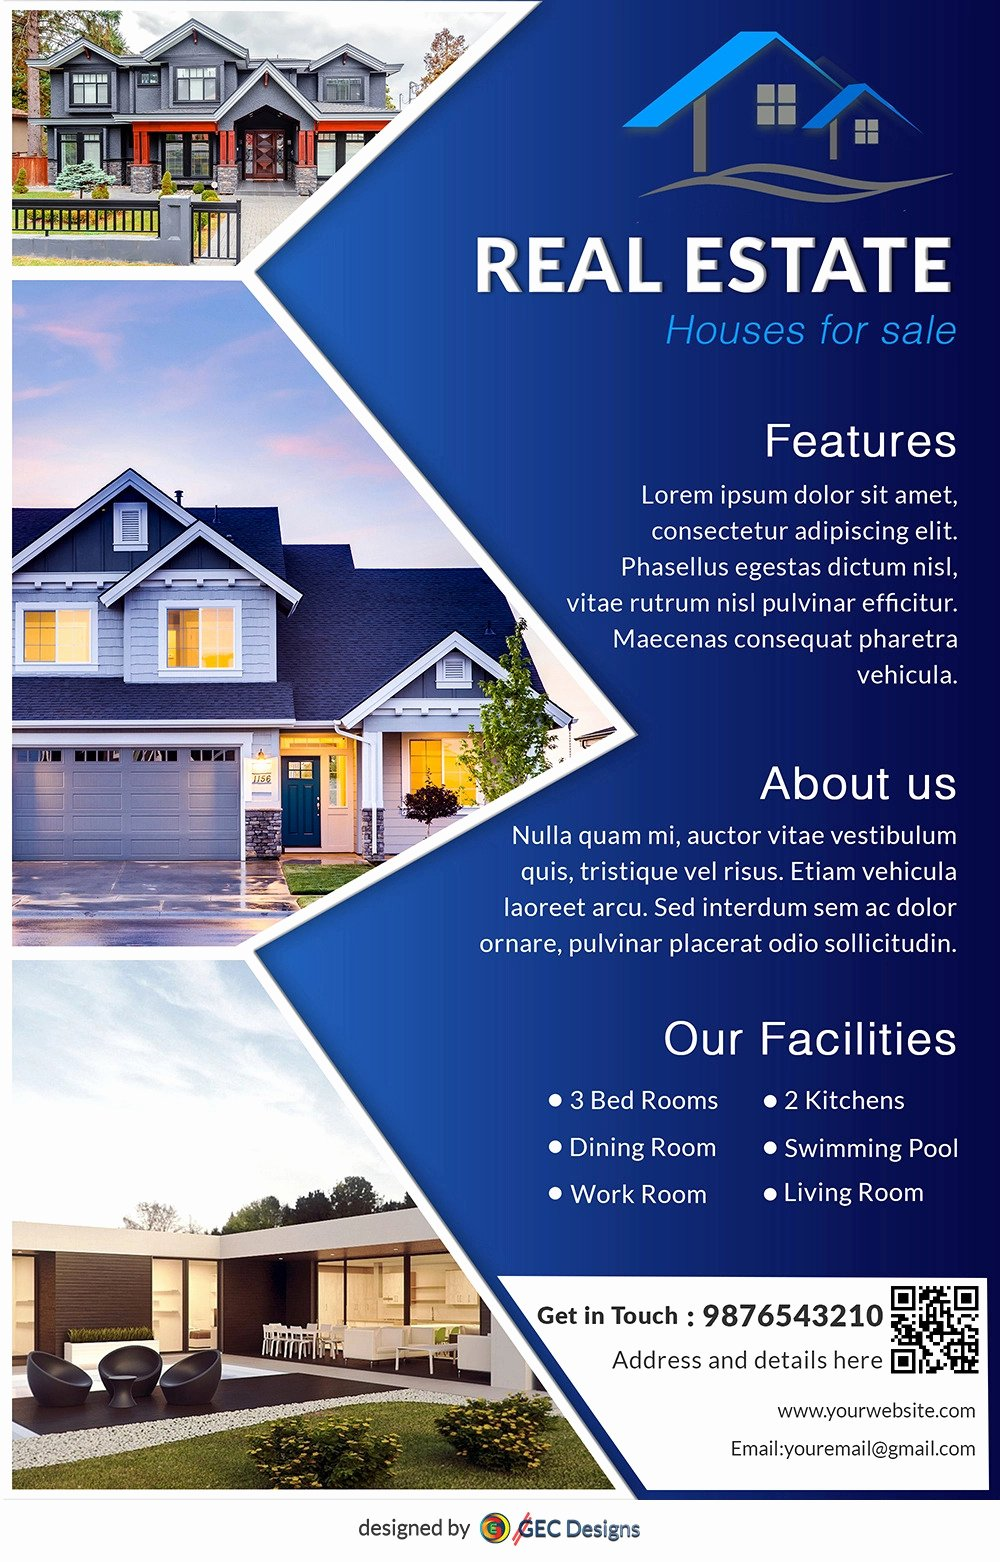 Free Real Estate Templates Luxury Download Free House for Sale Real Estate Flyer Design